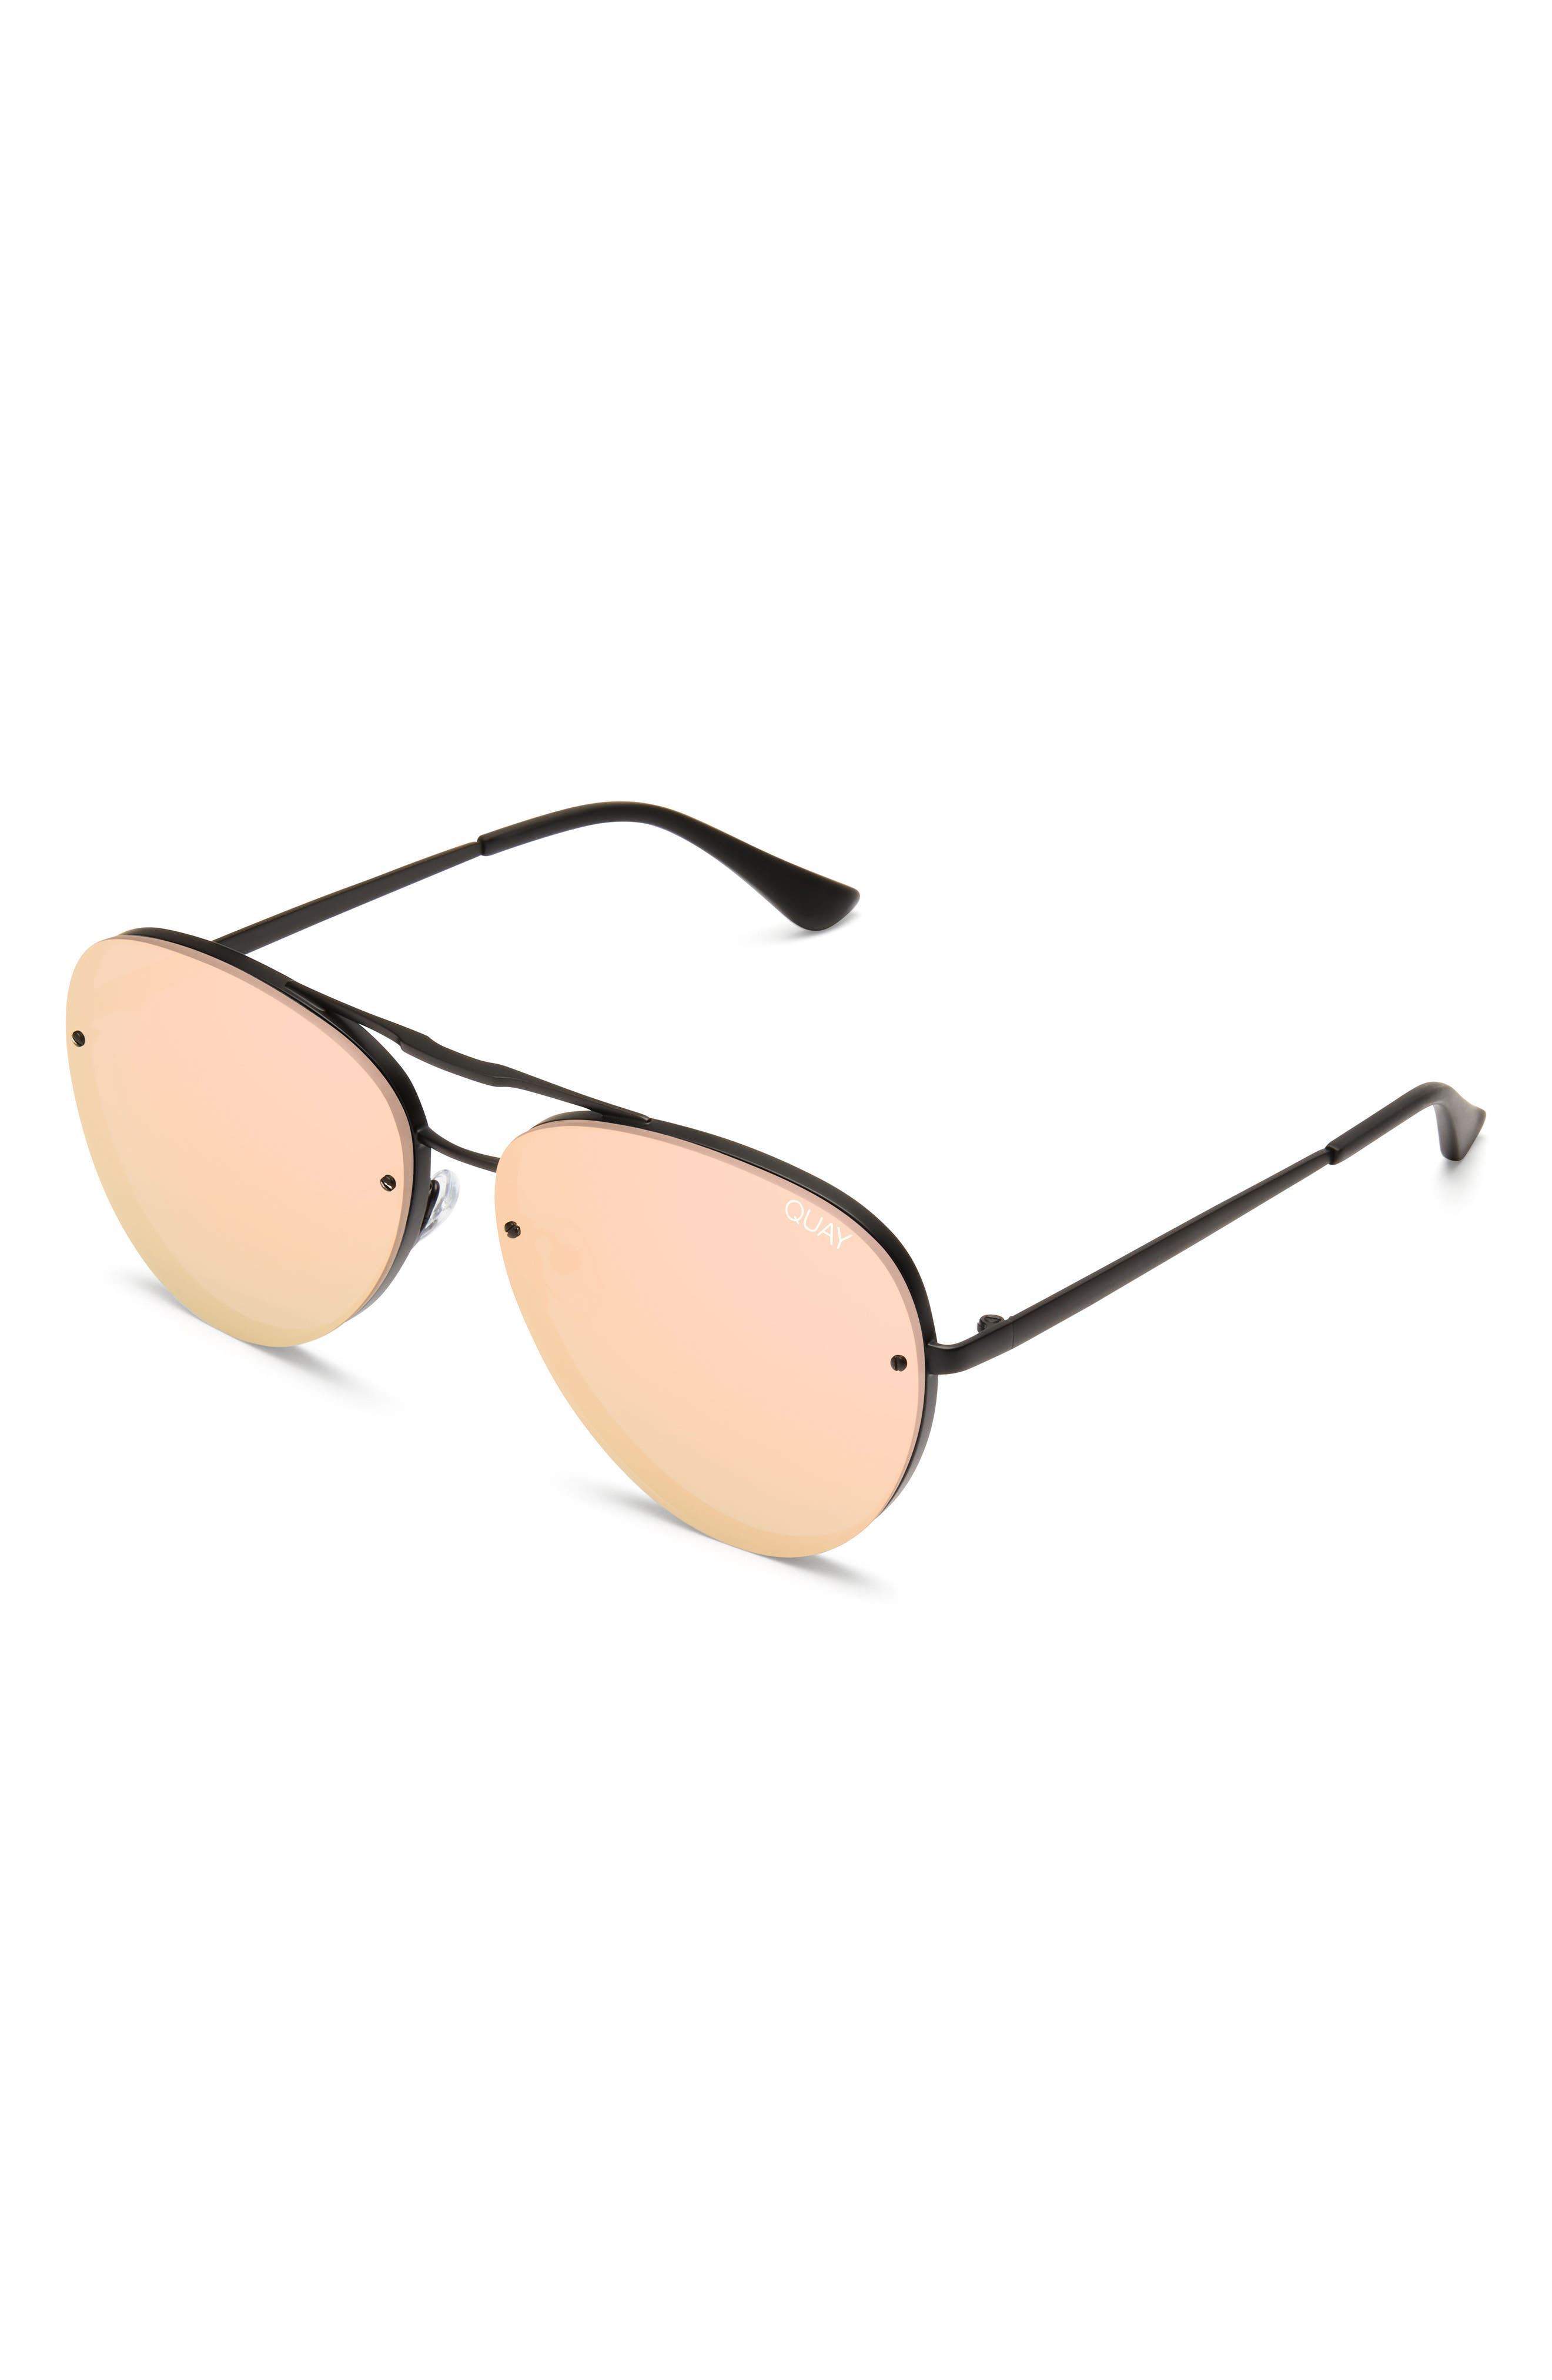 x Missguided Cool Innit 56mm Aviator Sunglasses,                             Alternate thumbnail 5, color,                             001